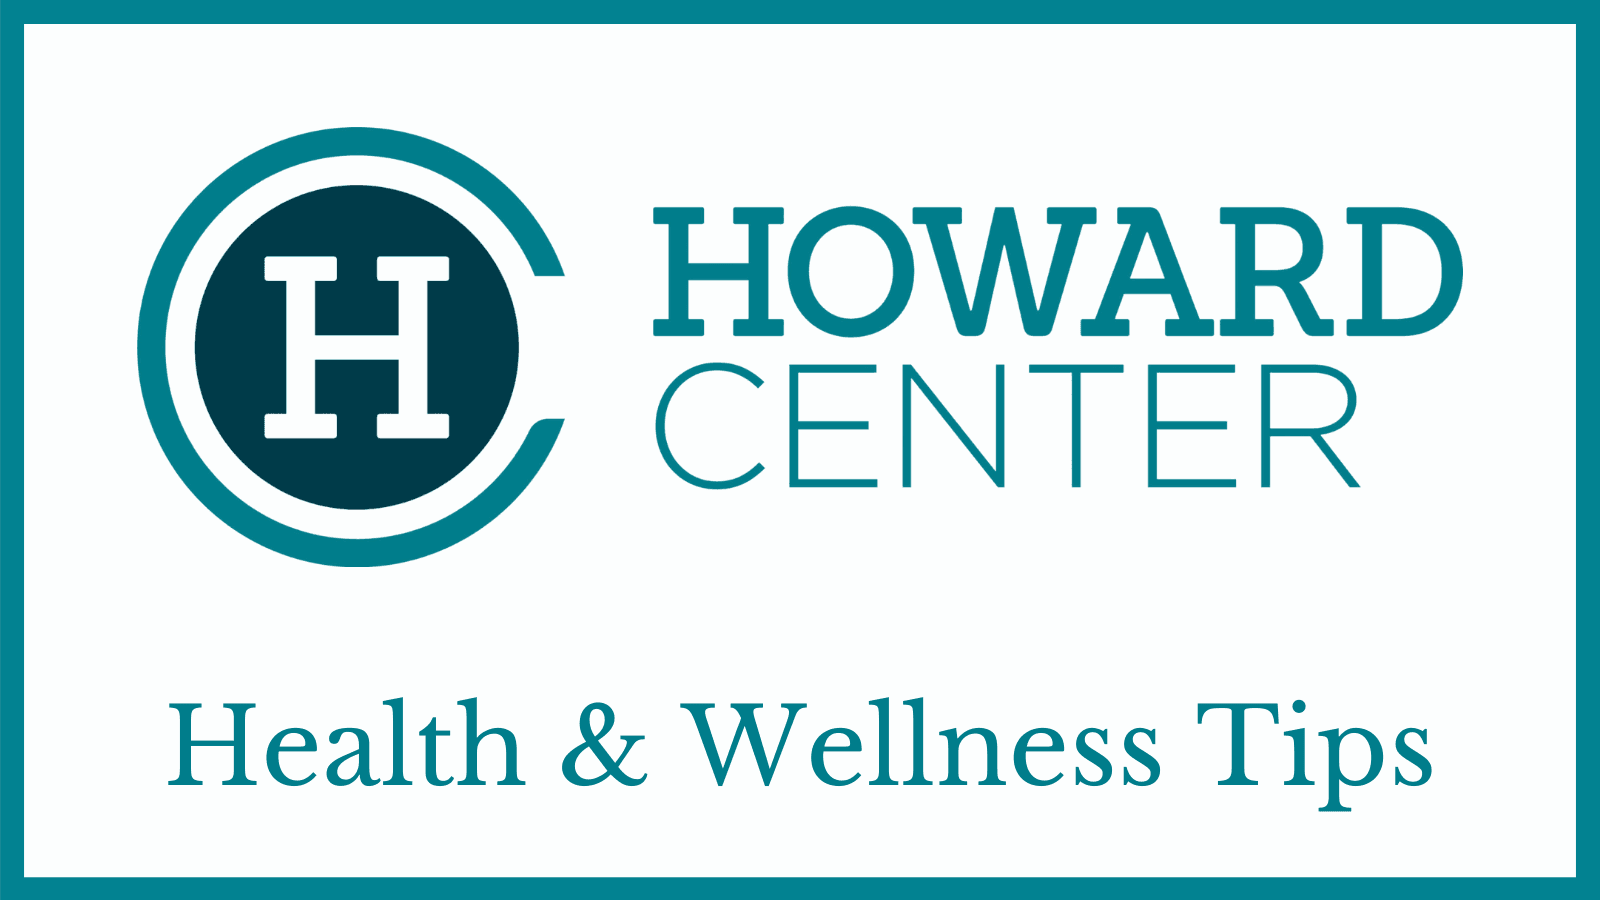 Howard Center Wellness Tips 16 x 9